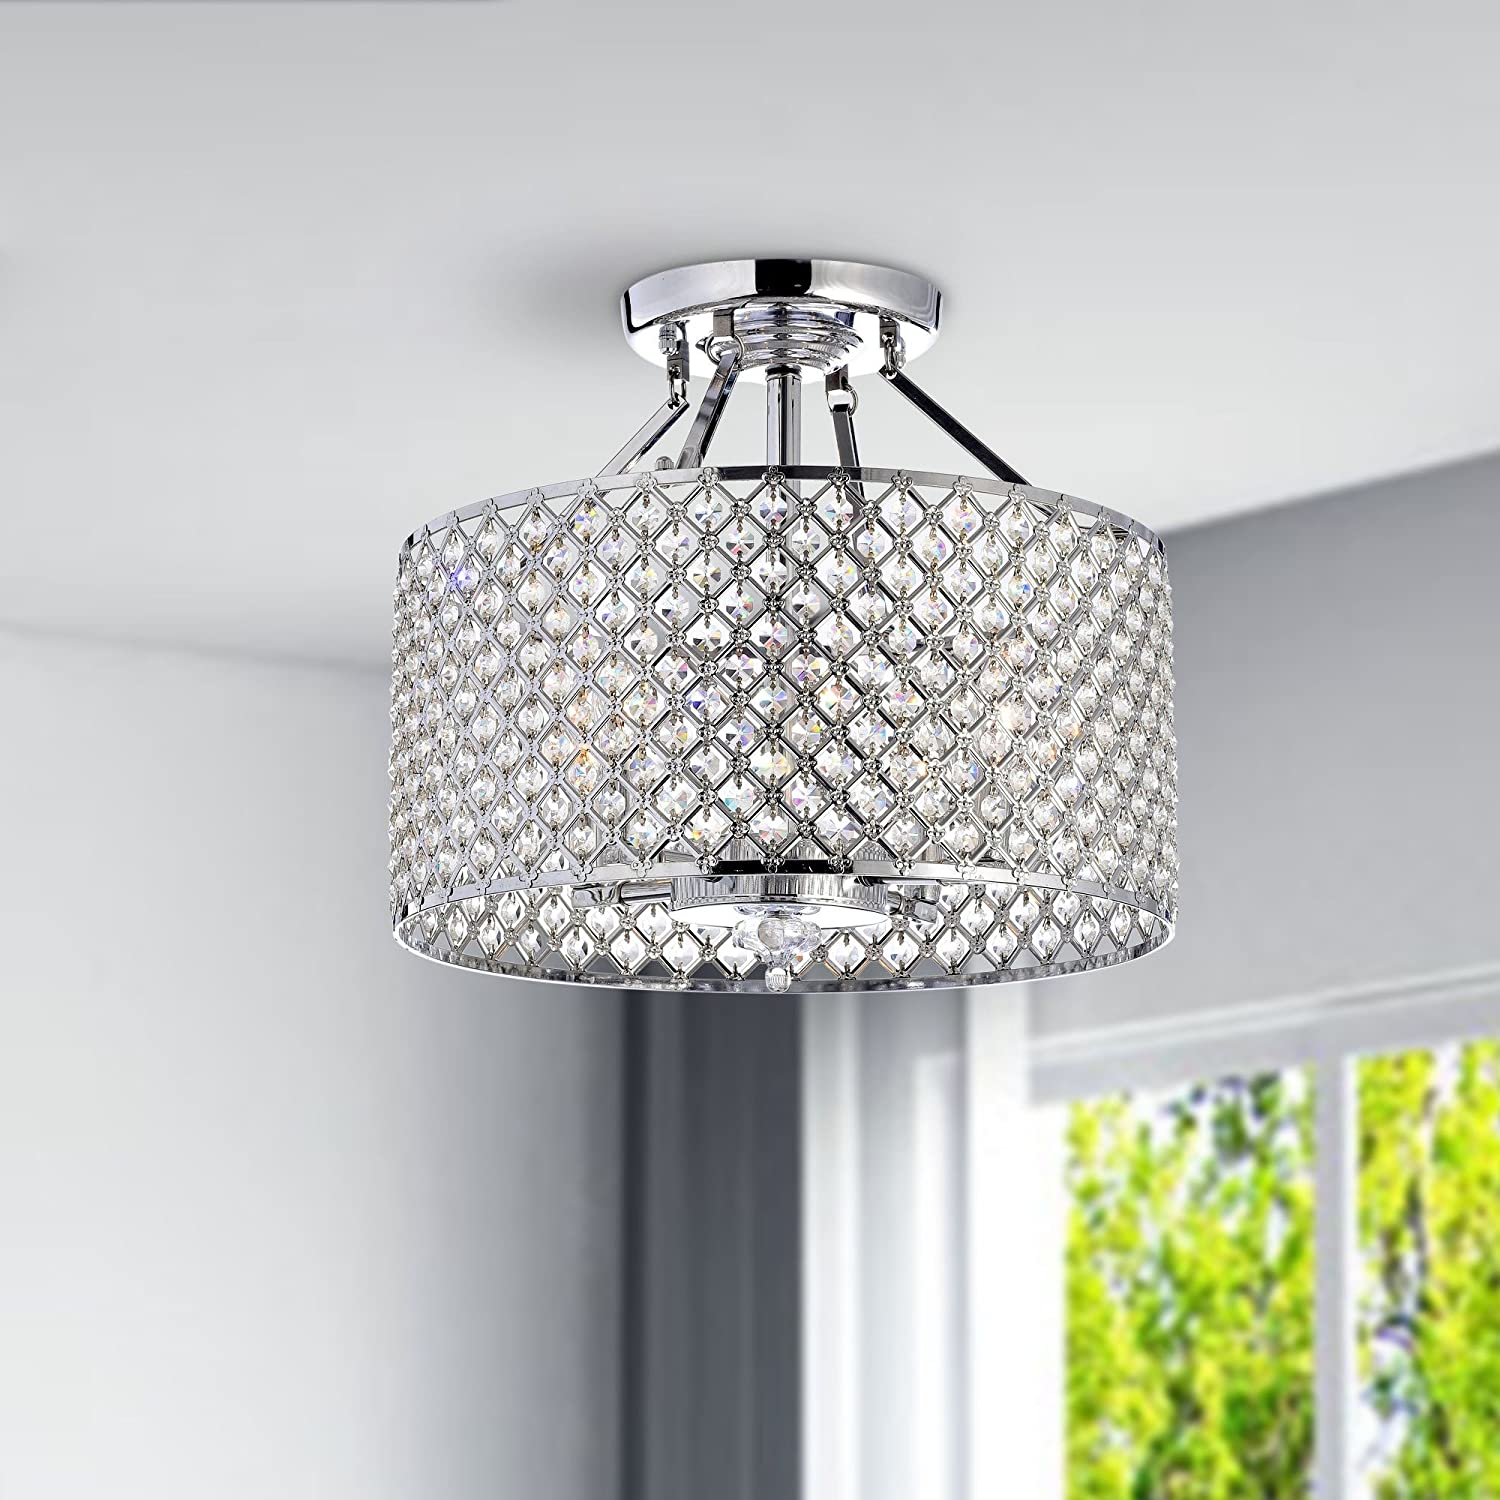 Chrome crystal 4 light round ceiling chandelier amazon arubaitofo Images